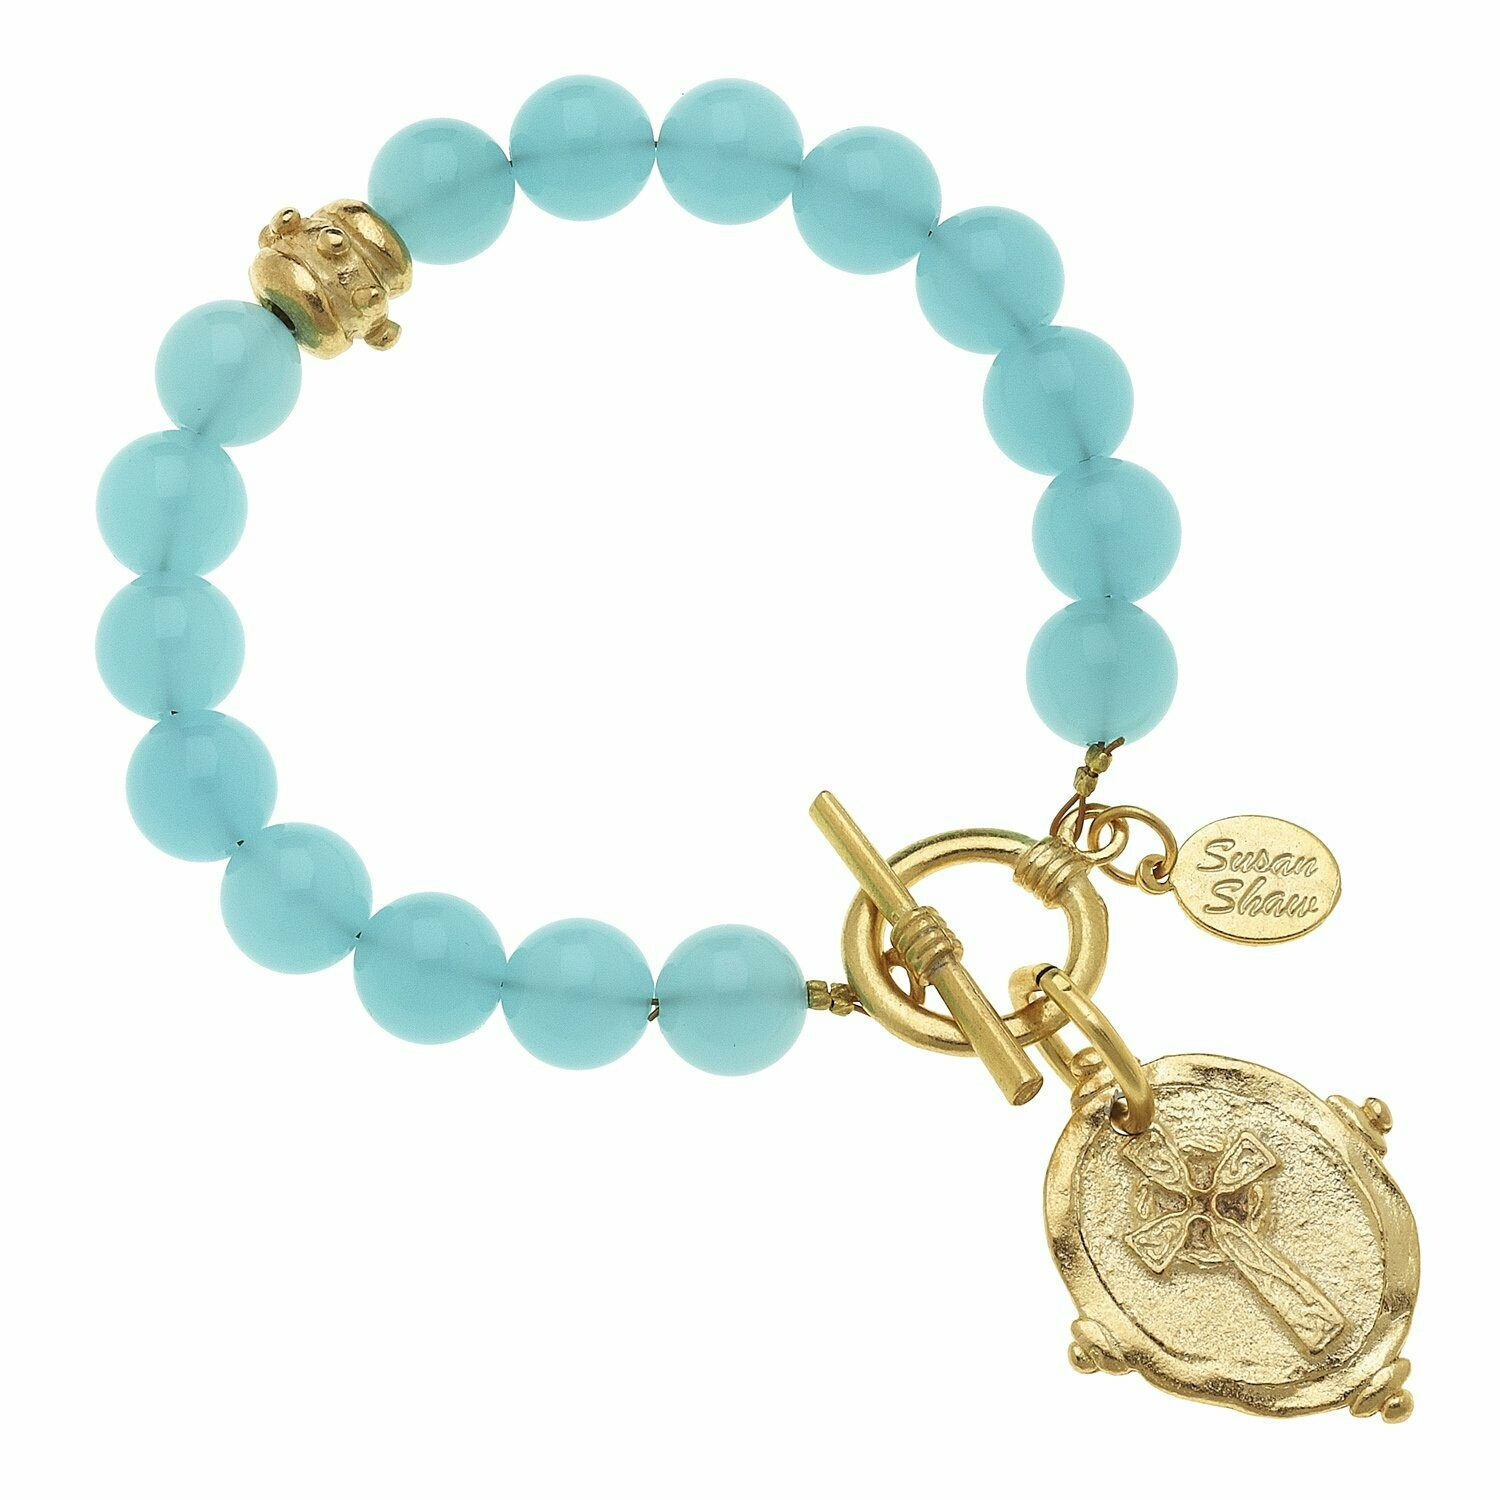 CROSS STONE TOGGLE BRACELET - Turquoise Quartz